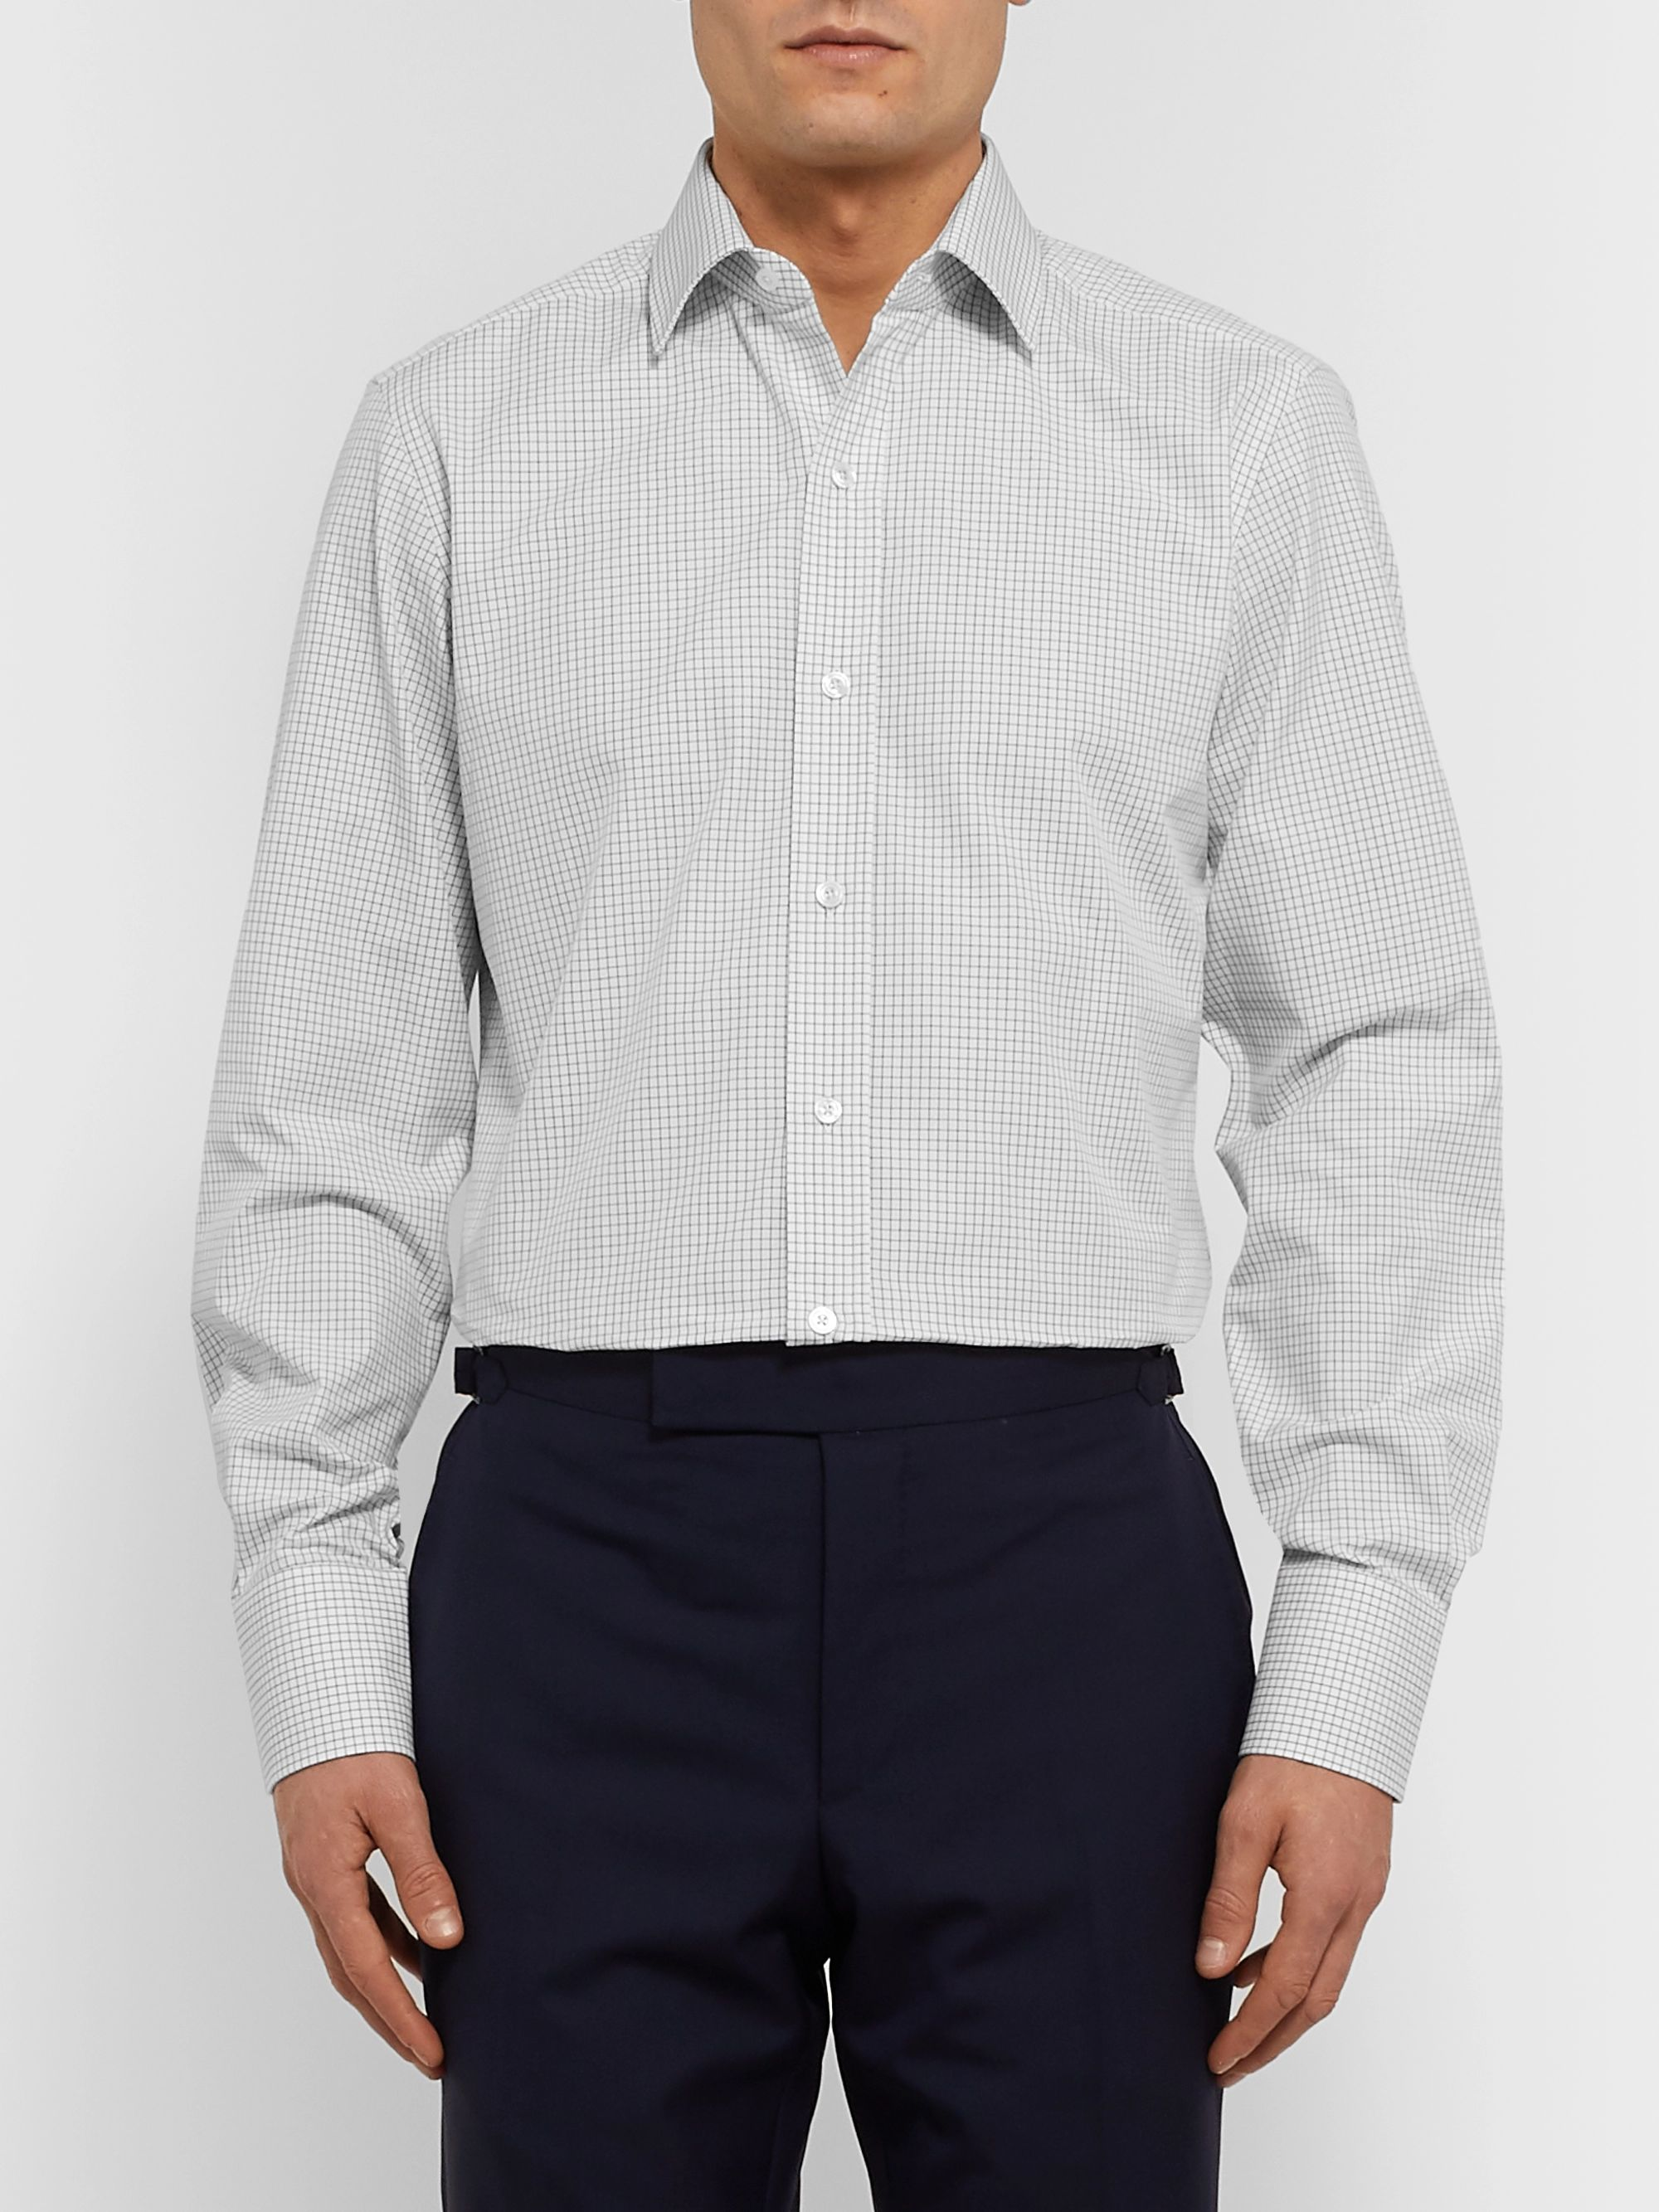 TOM FORD White Slim-Fit Checked Cotton-Poplin Shirt